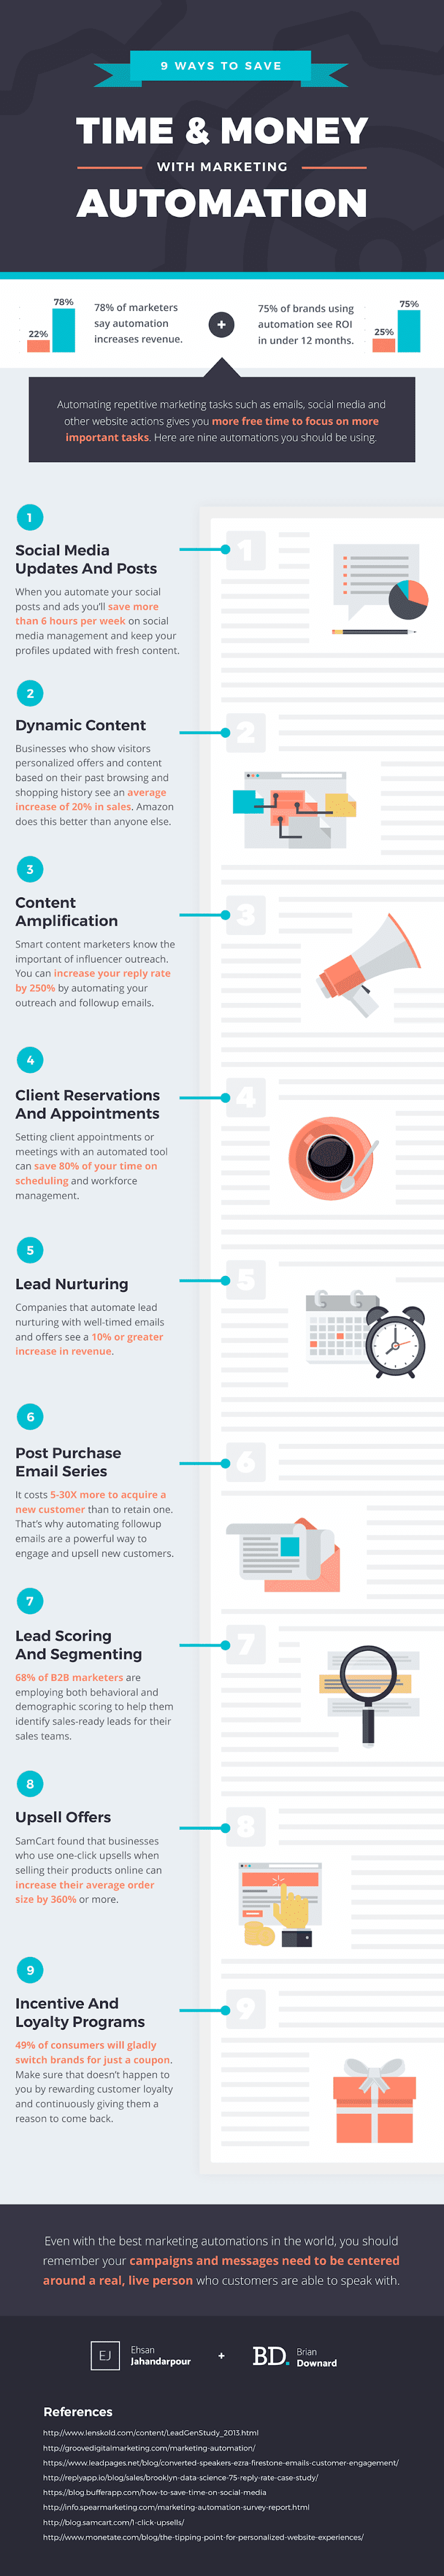 9 Ways to Save Time and Money With Marketing Automation #infographic